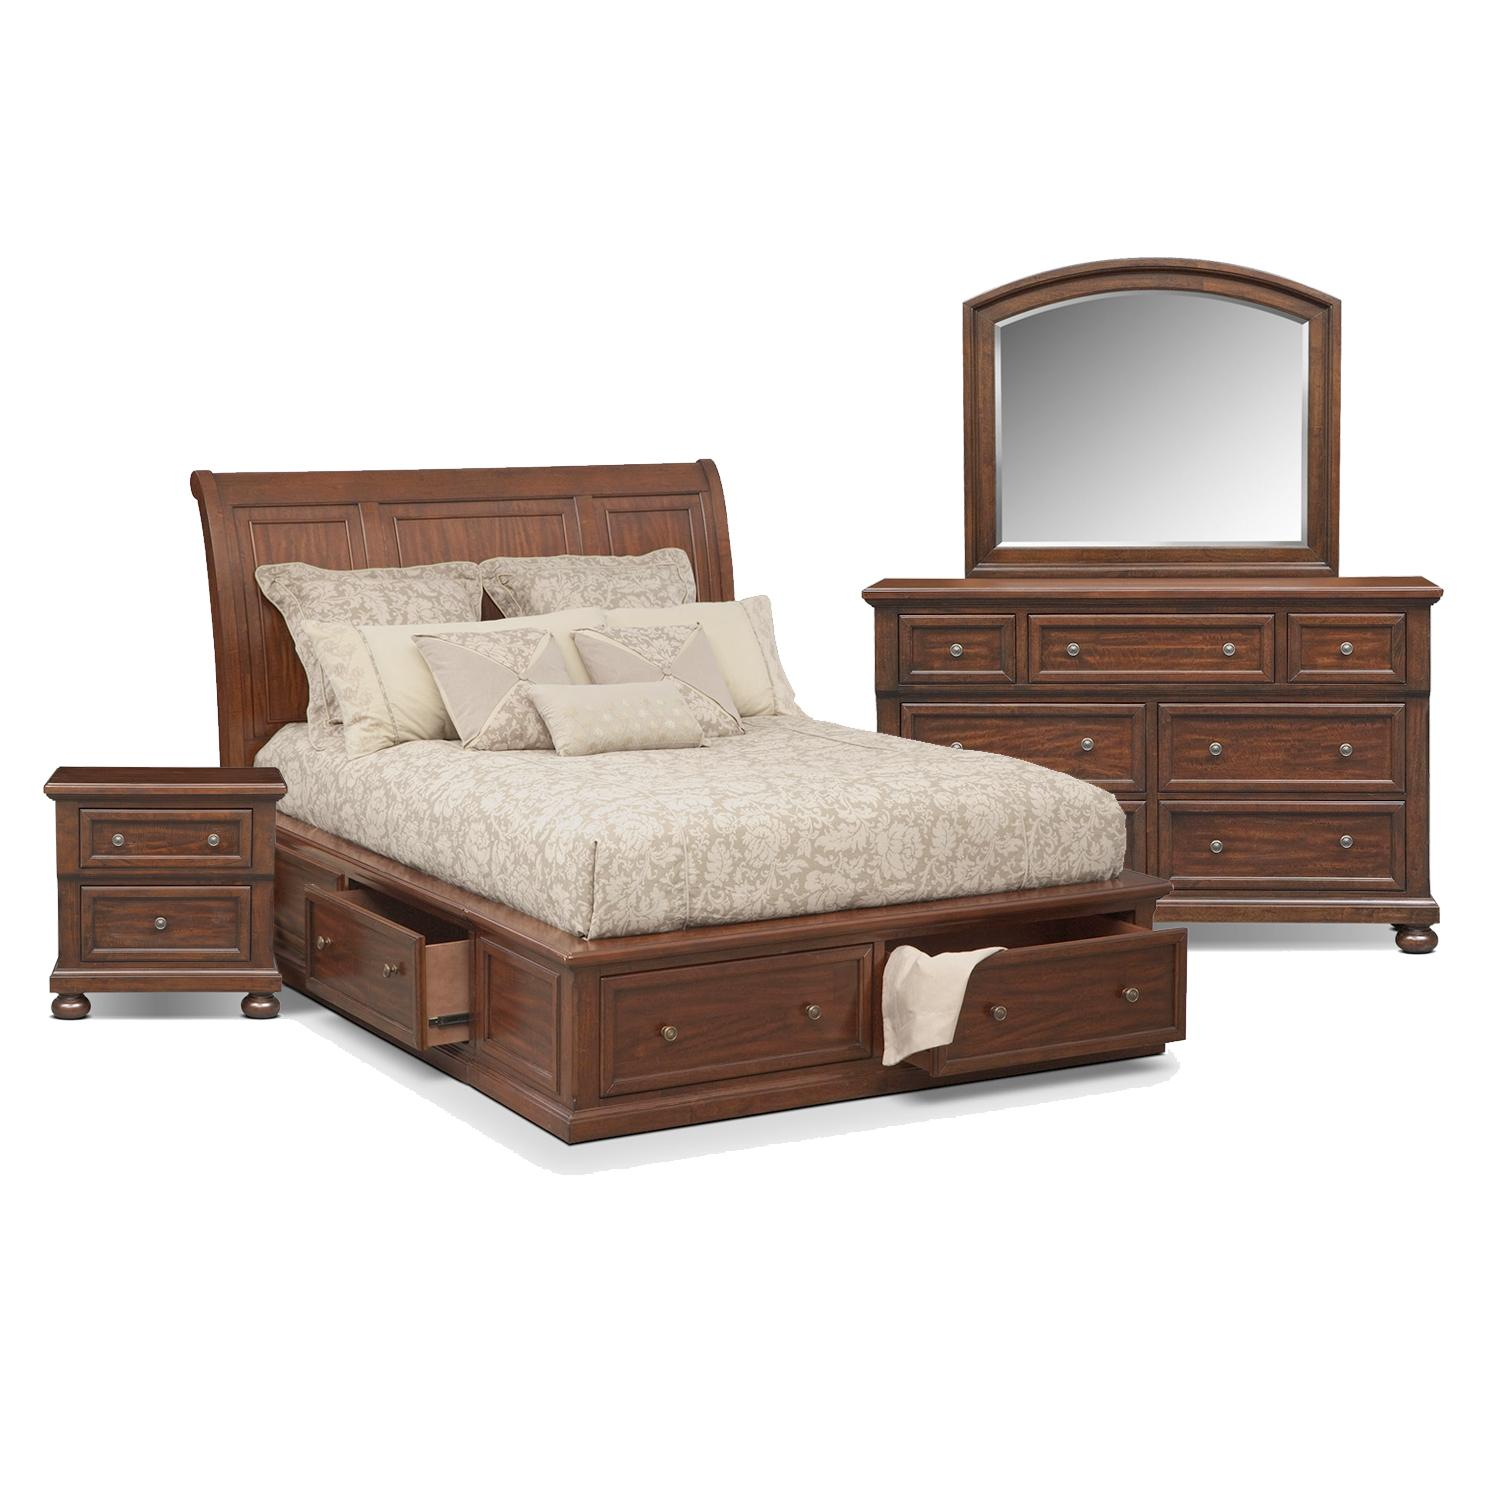 Bedroom FurnitureValue City Furniture